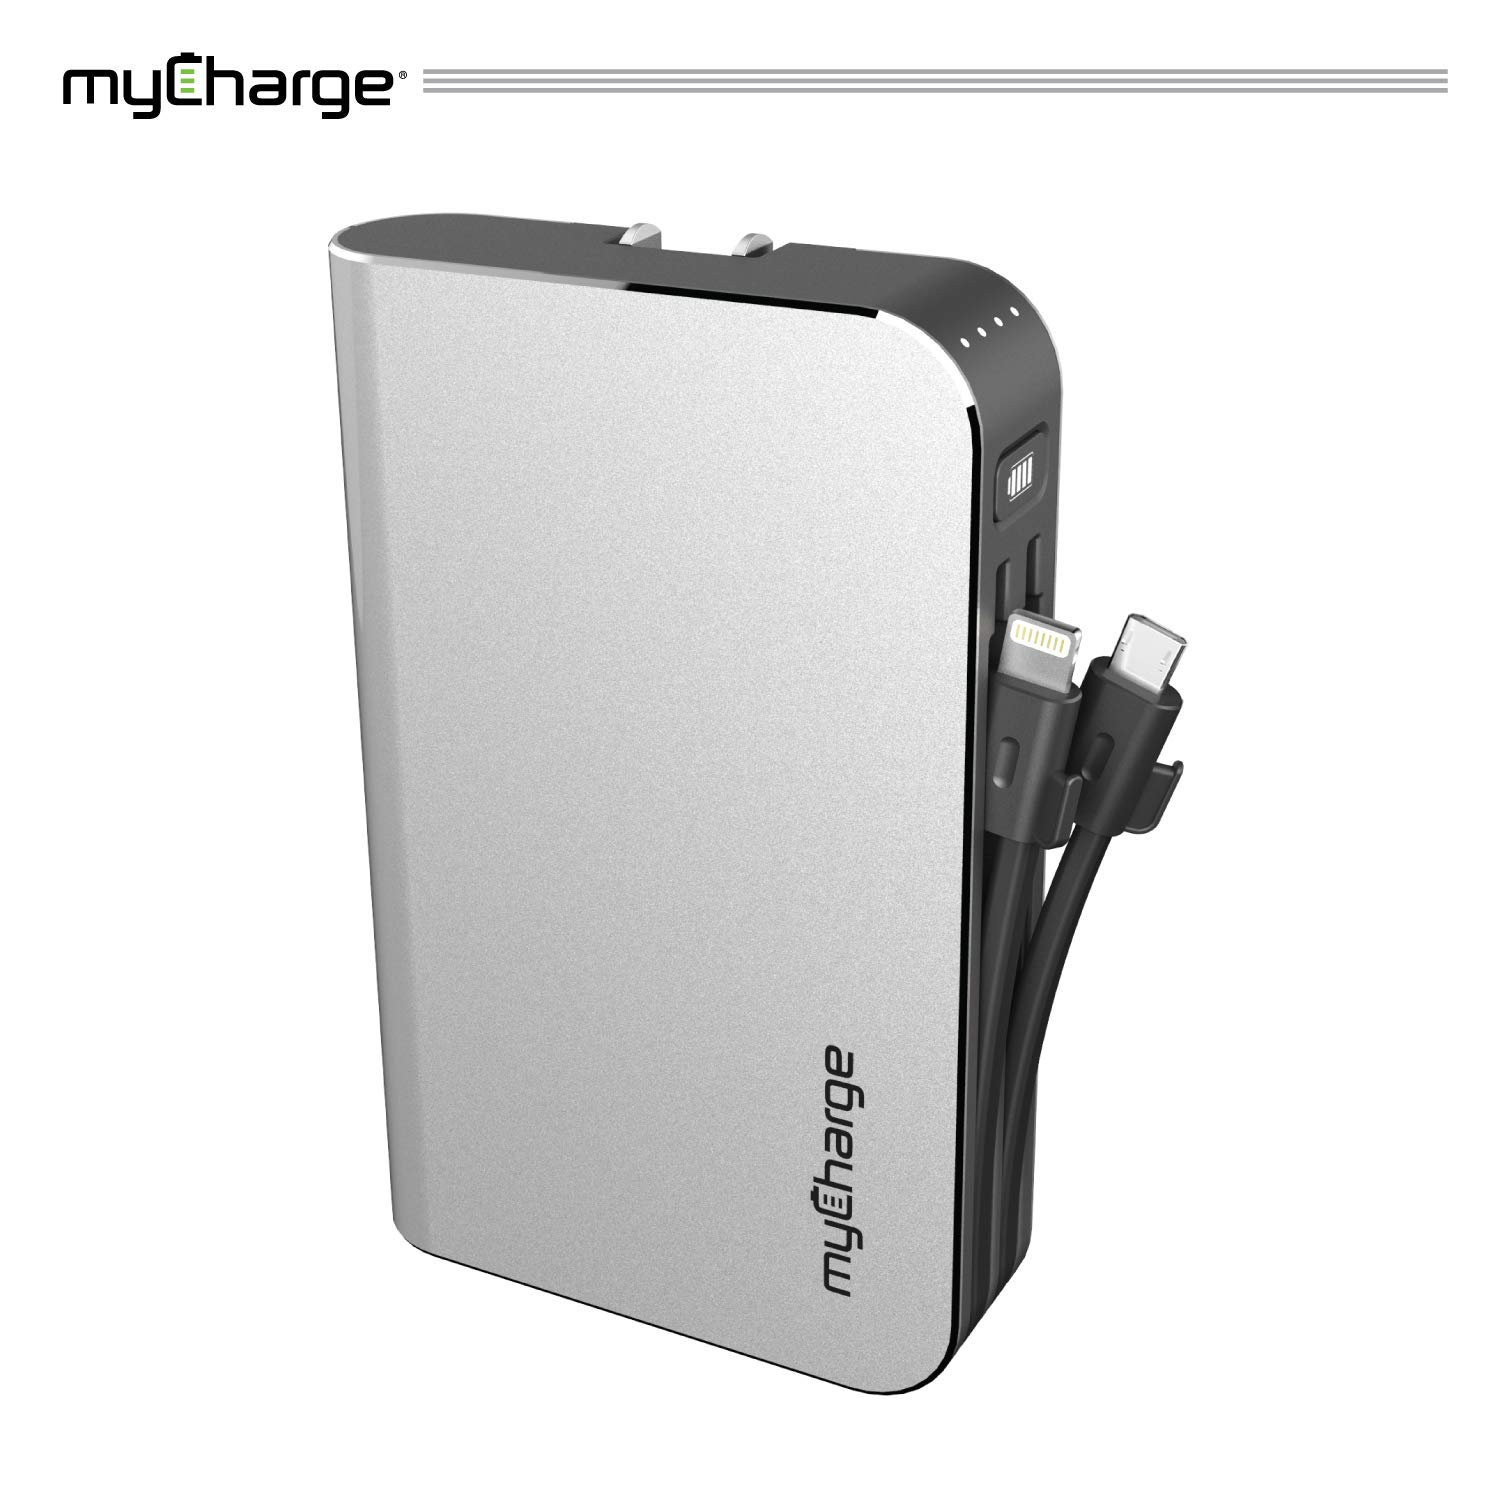 myCharge Portable Charger Power Bank - Hubmax 10050 mAh External Battery Pack | Wall Charger Foldable Plug | Built in Cables (Apple iPhone Charger Lightning Cable and Android Samsung Micro USB Cable) by myCharge